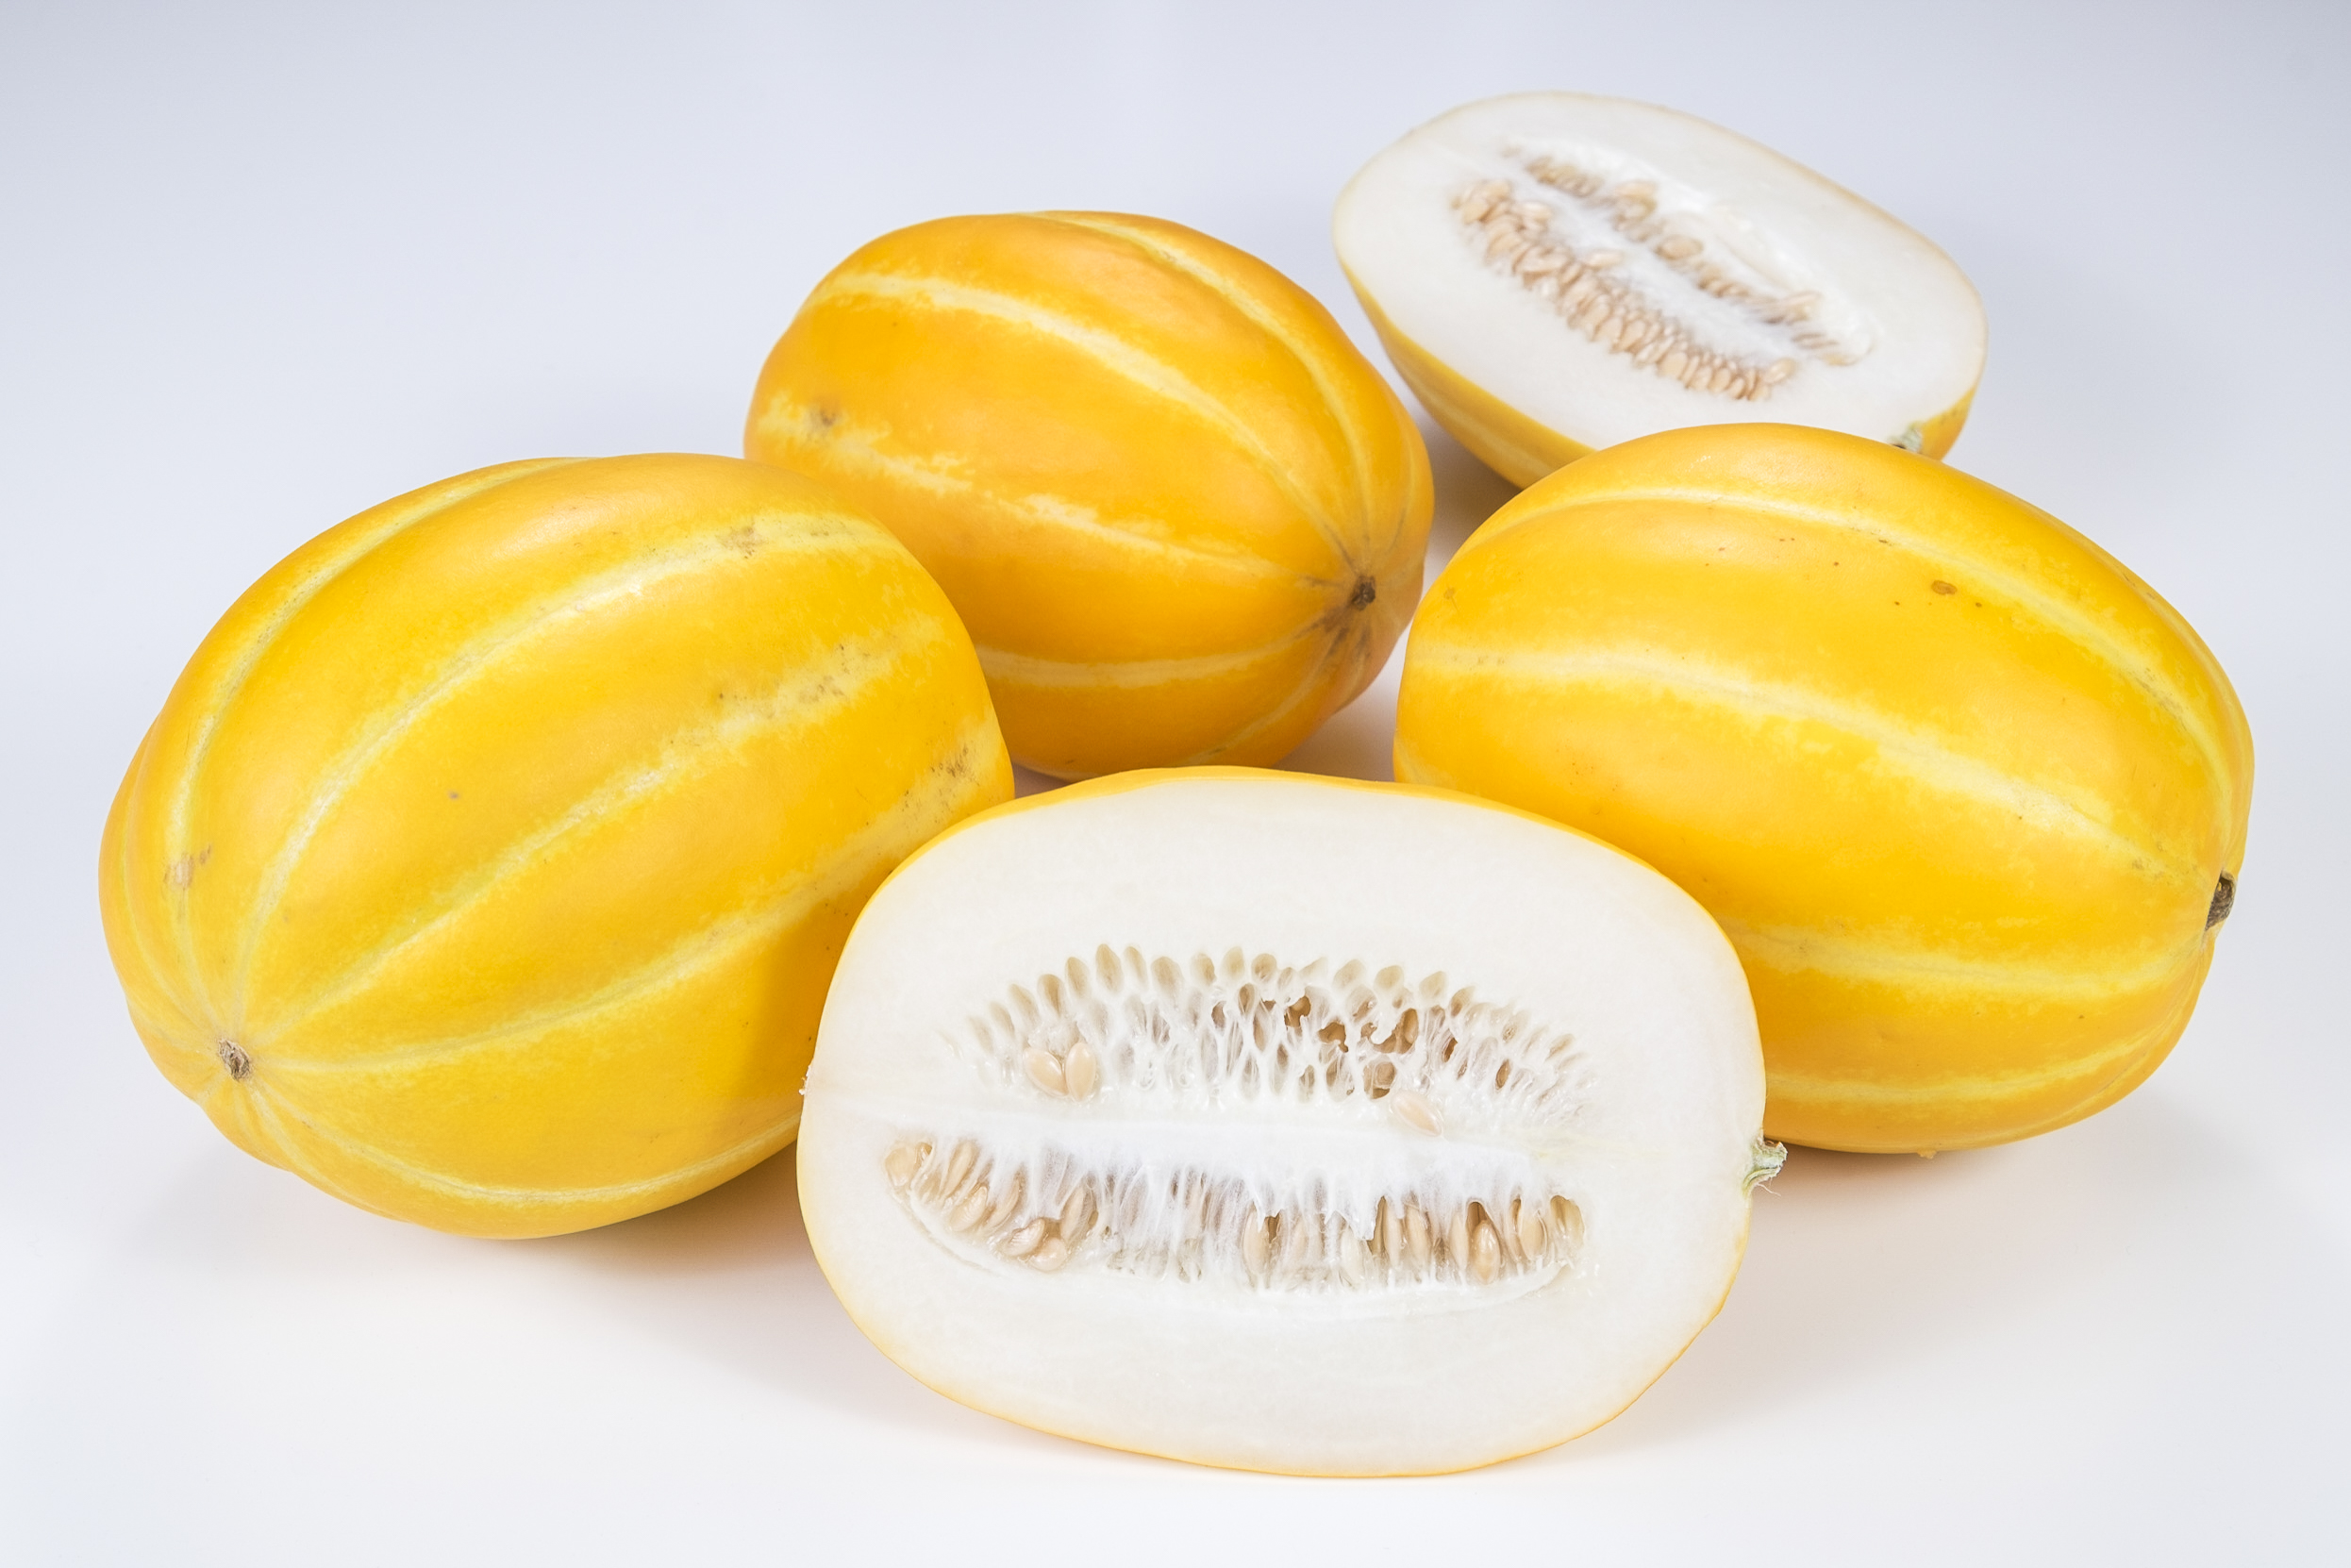 Ingredient Of The Day: Korean Melon